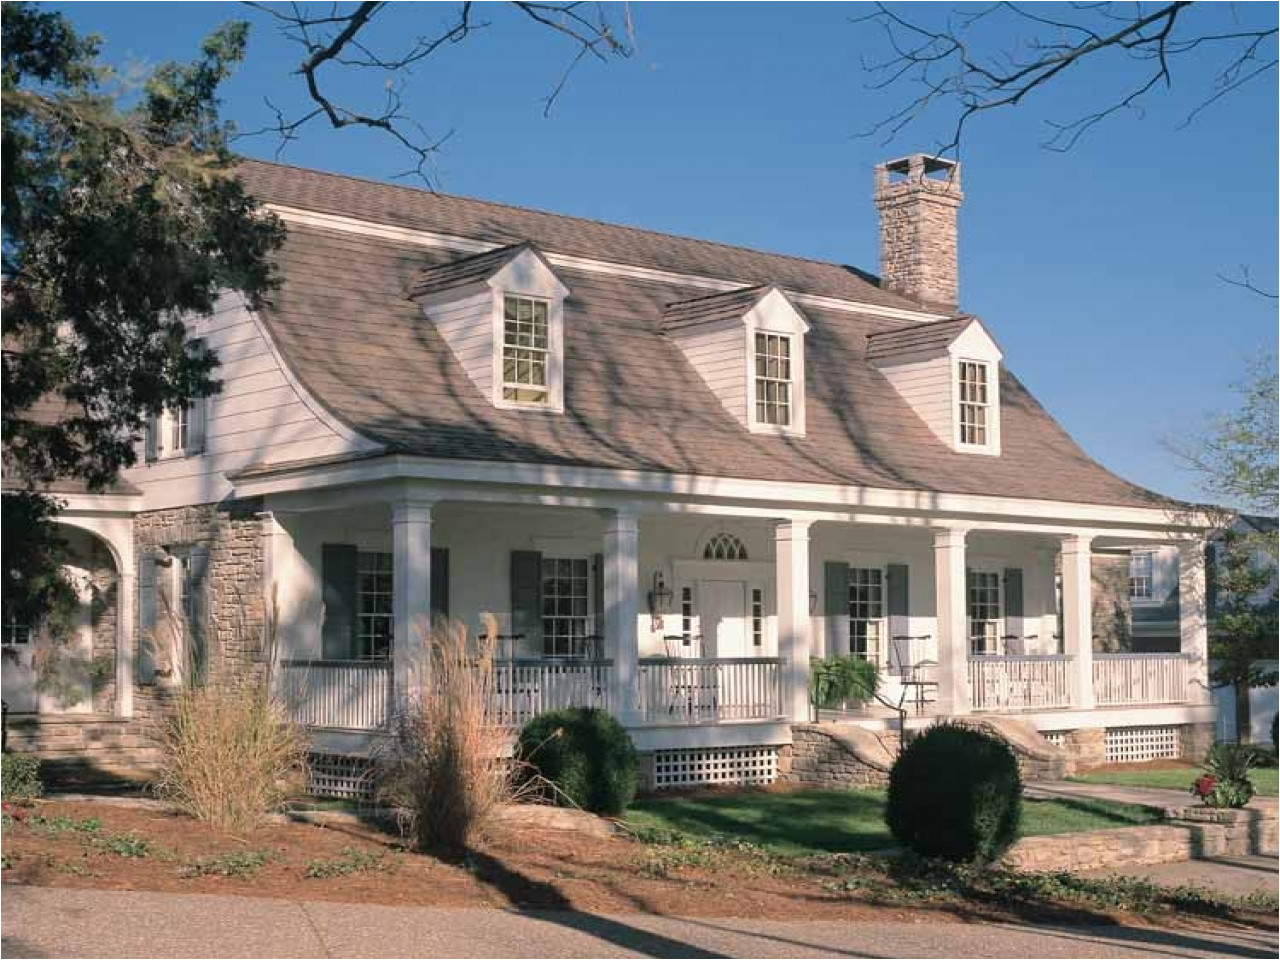 3182ffddb11736f6 french colonial style house dutch colonial style house plans